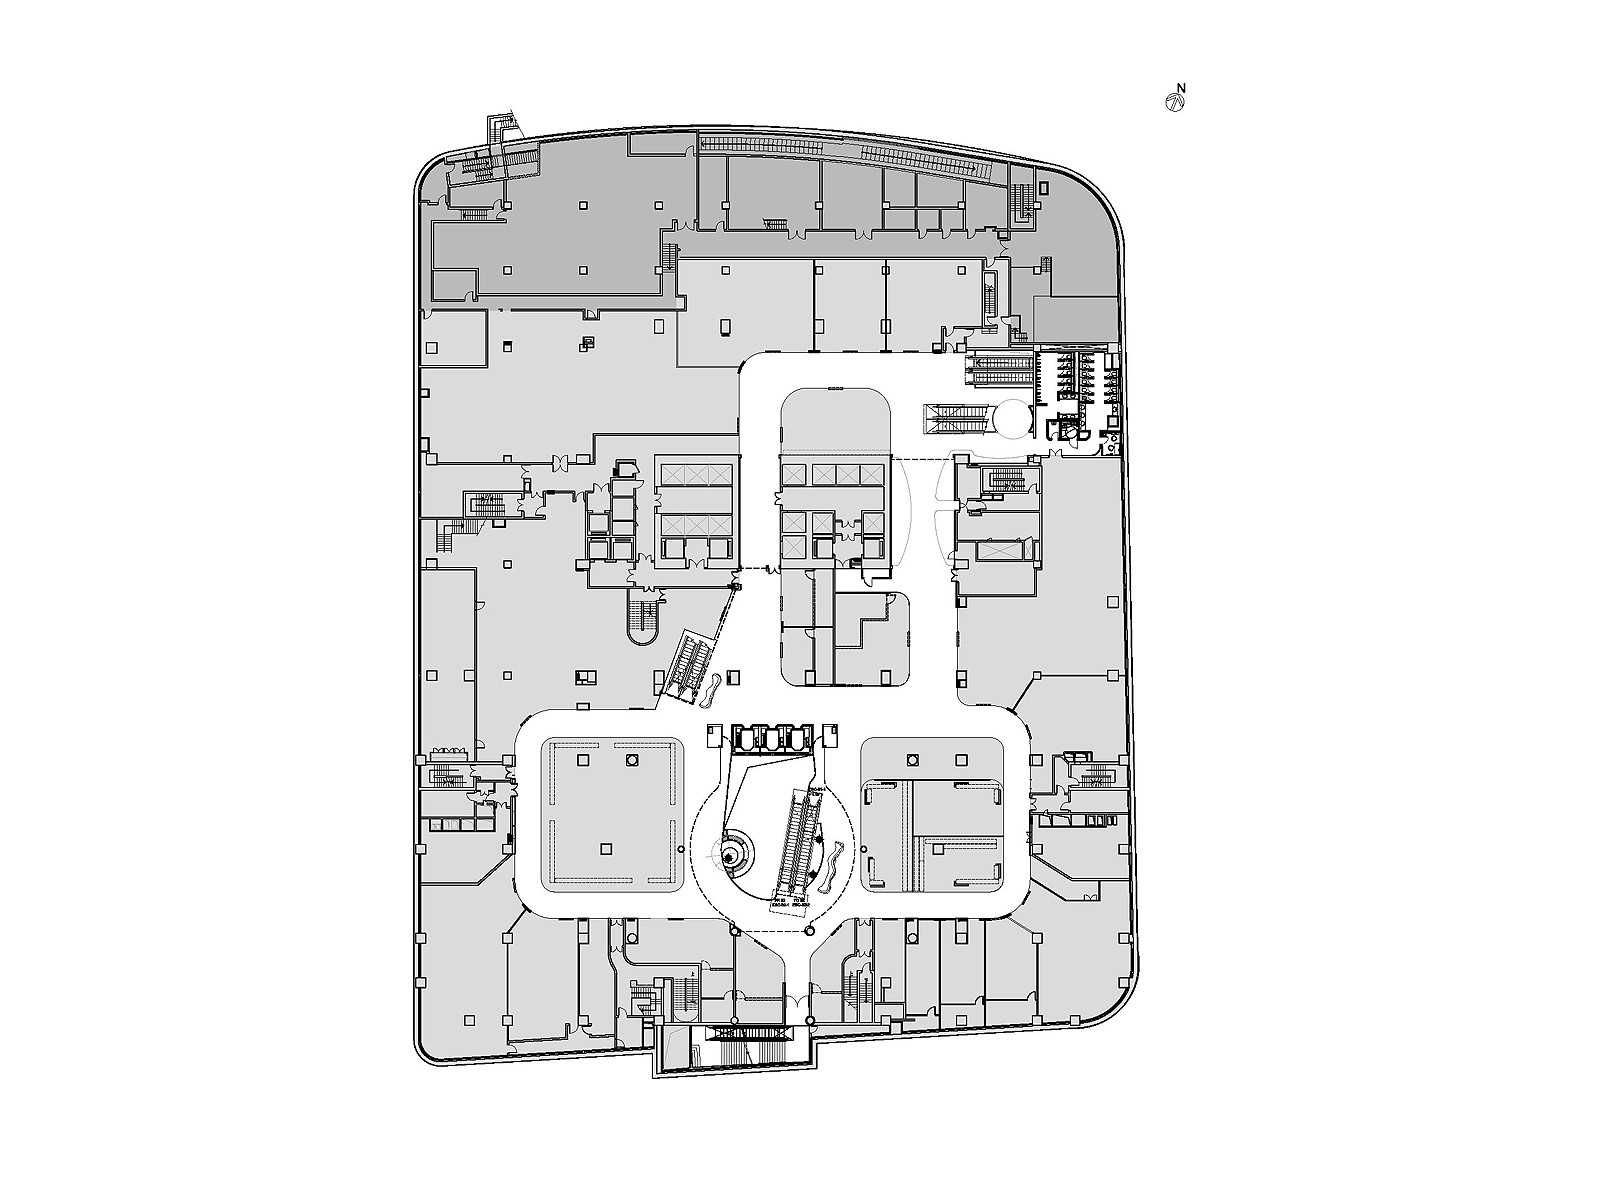 Basament Floor Plan